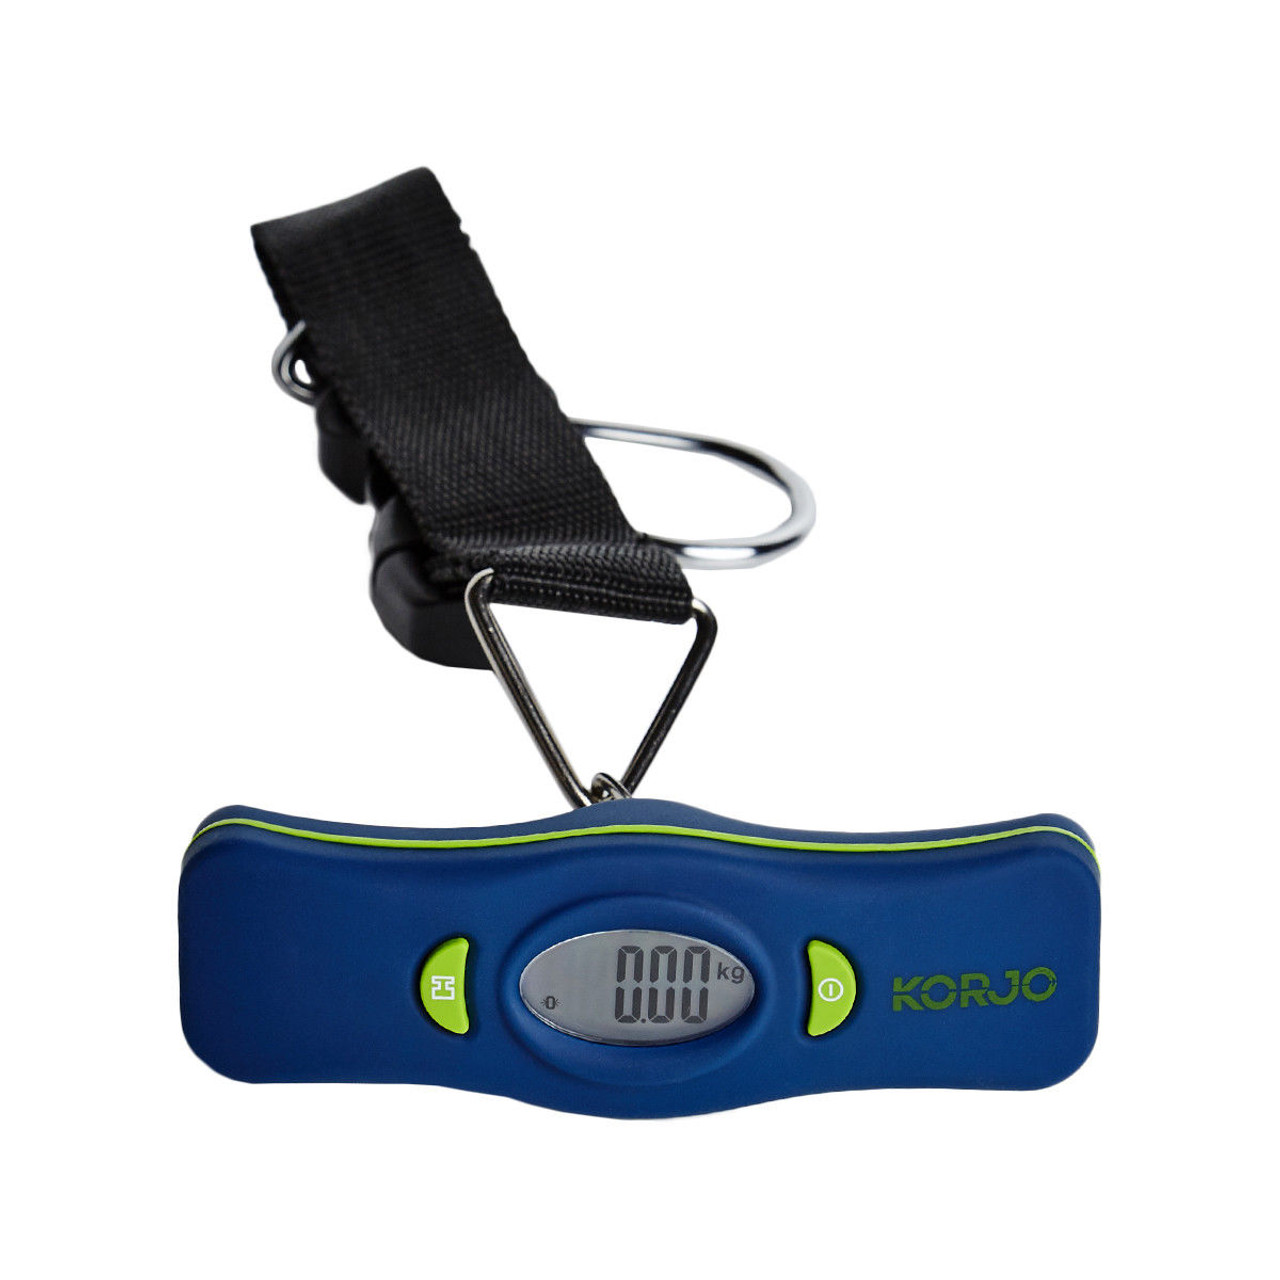 Korjo DLS82 Digital Luggage Scale Weights up to 110Lb/50kg